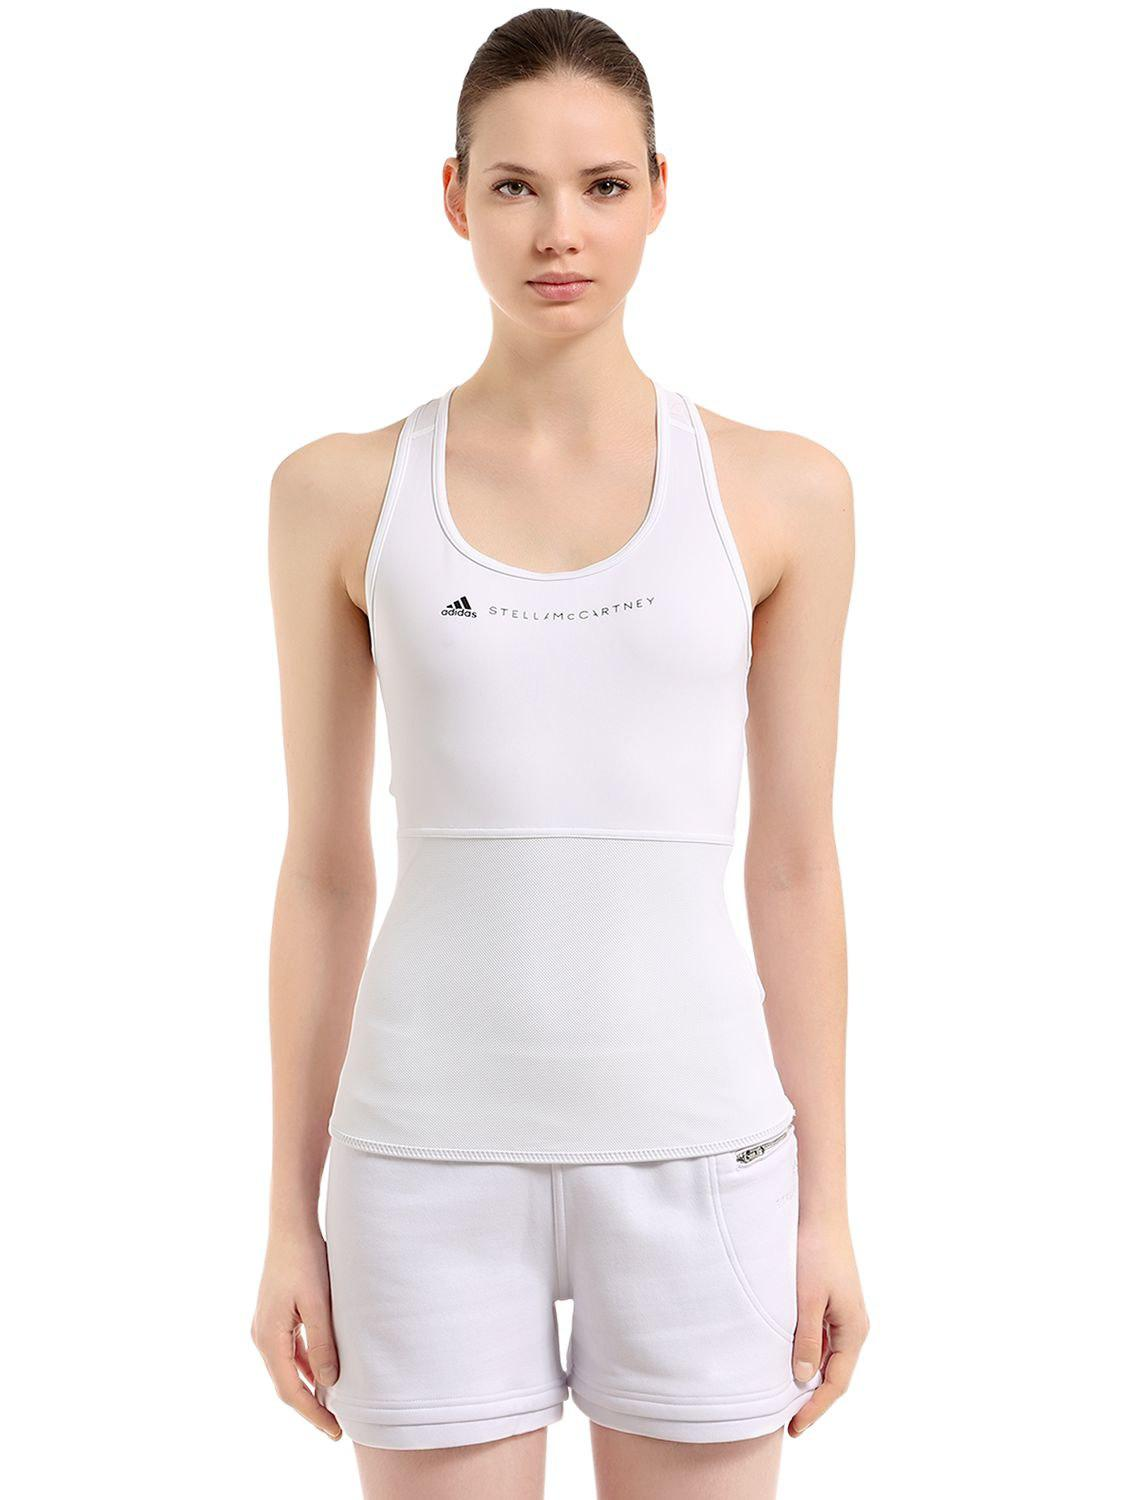 Discount Codes Shopping Online adidas ESSENTIALS TANK TOP W/ MESH PANEL Under 70 Dollars Clearance Geniue Stockist Cheap With Paypal p7QWeFhi4